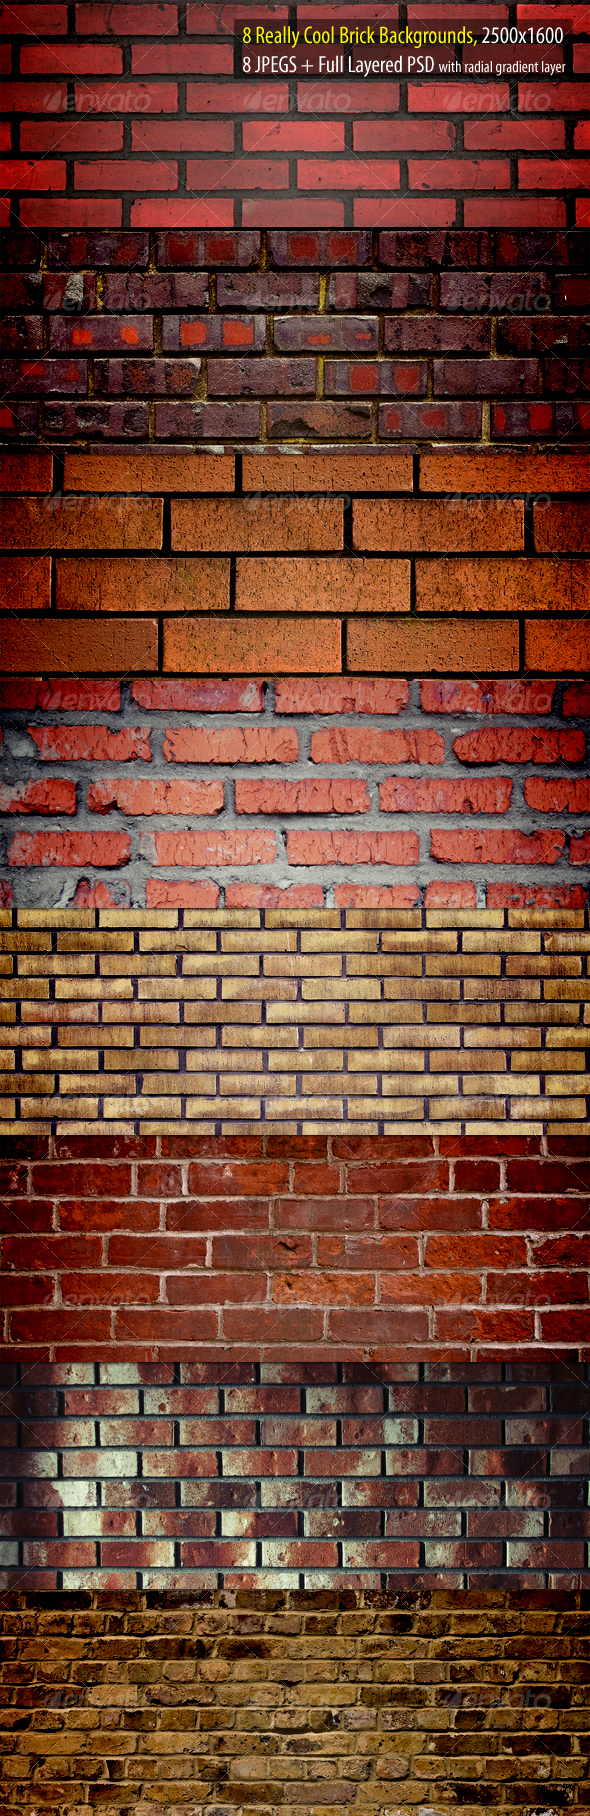 Really Cool Brick Backgrounds Pack - Urban Backgrounds